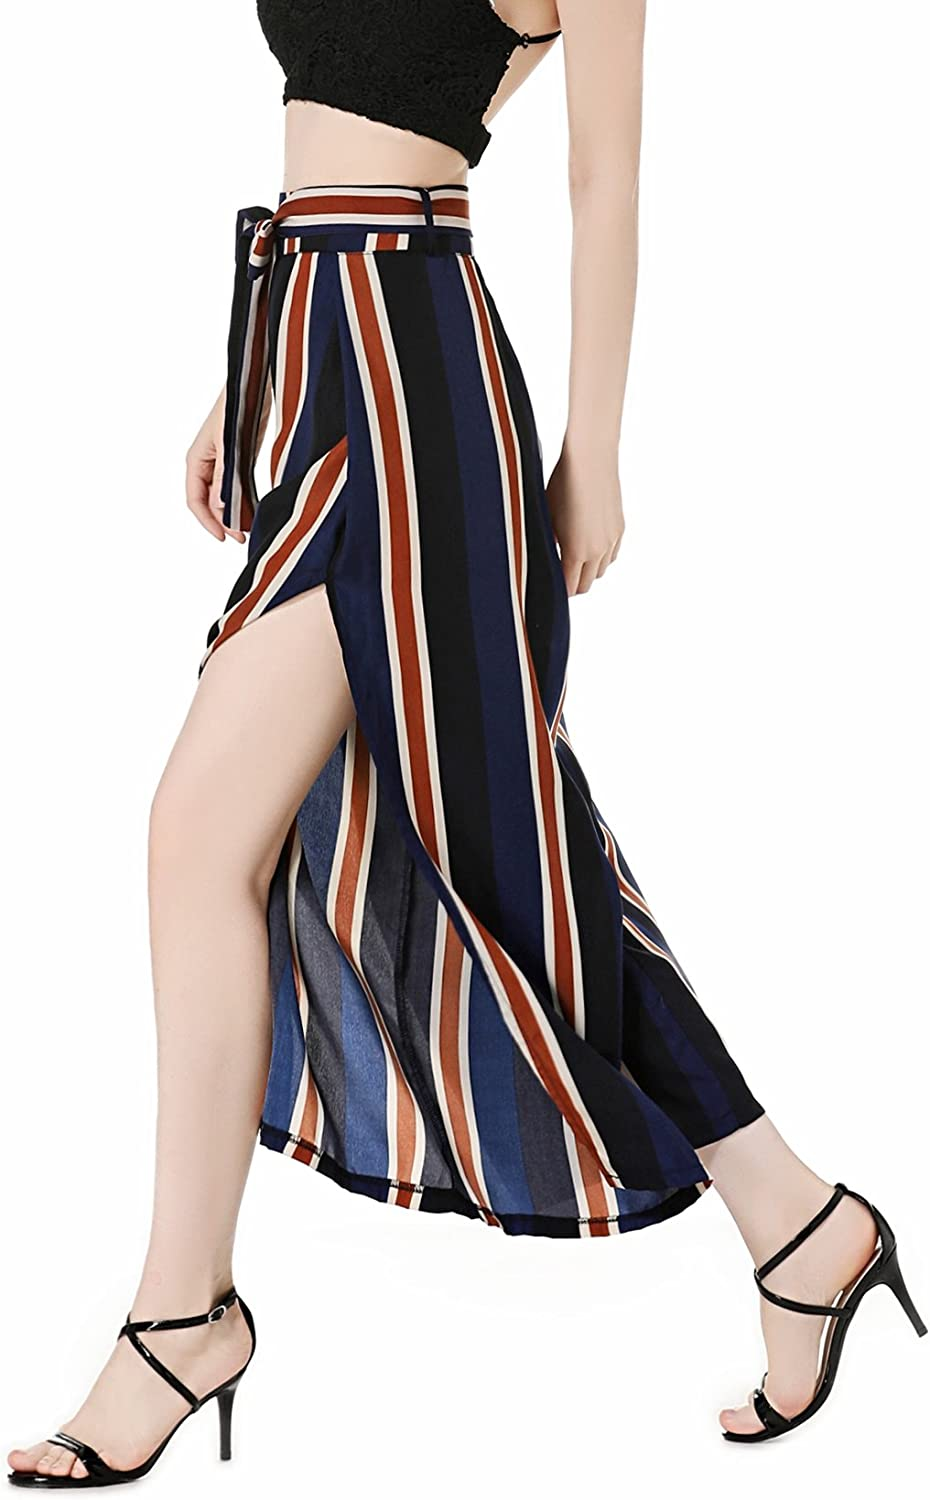 Women's Casual Stripe High Waisted Culotte Slip Palazzo Pants for Women